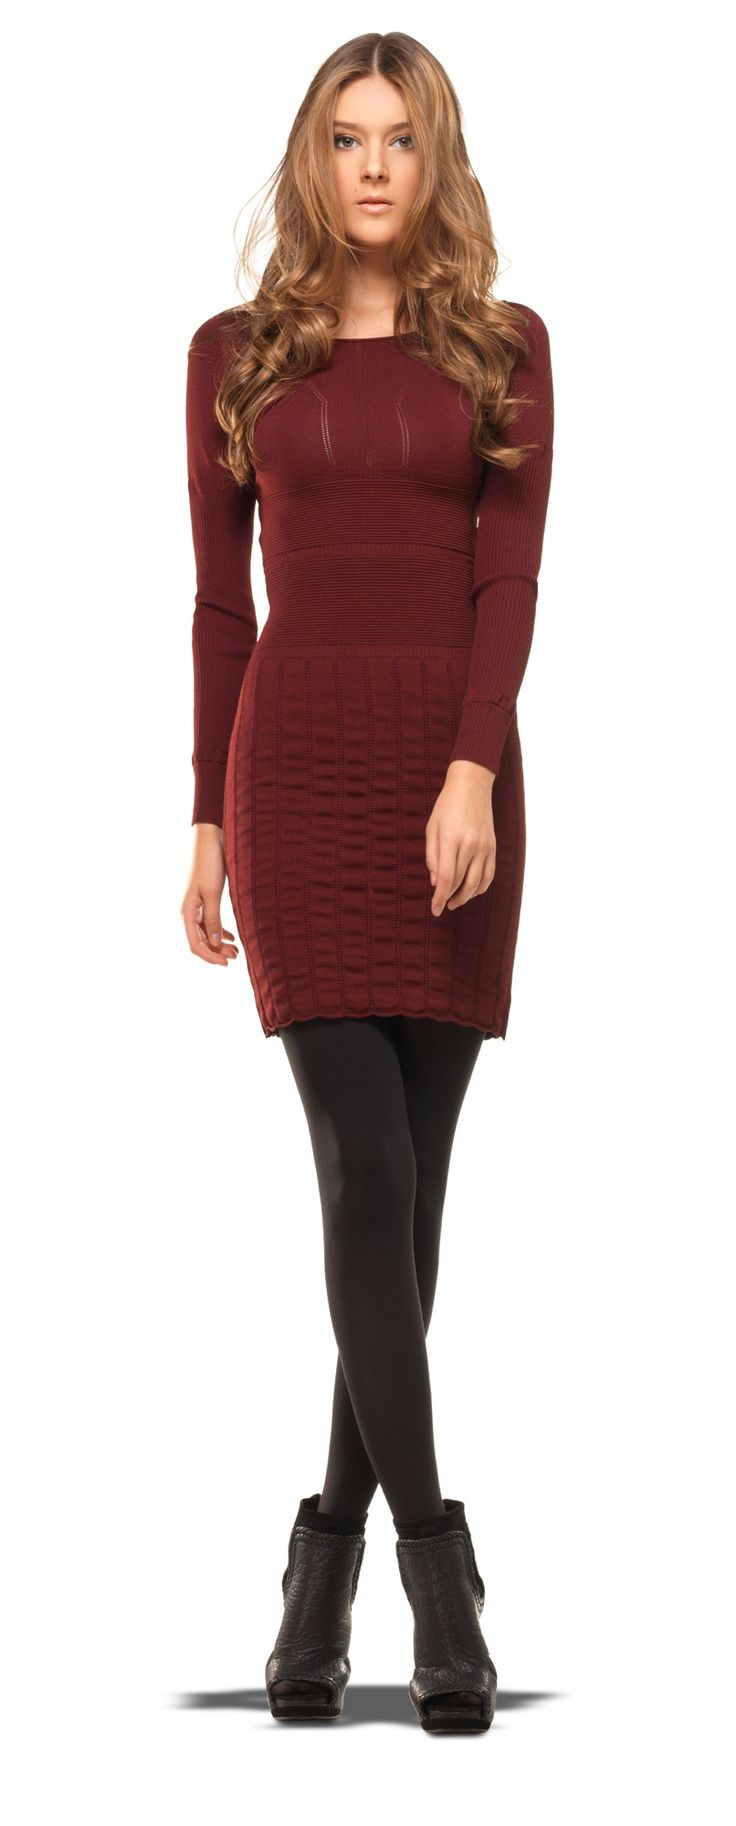 Pin By Theresa Schafer On Out And About Sweater Dress Fashion Long Sleeve Sweater Dress [ 1826 x 736 Pixel ]